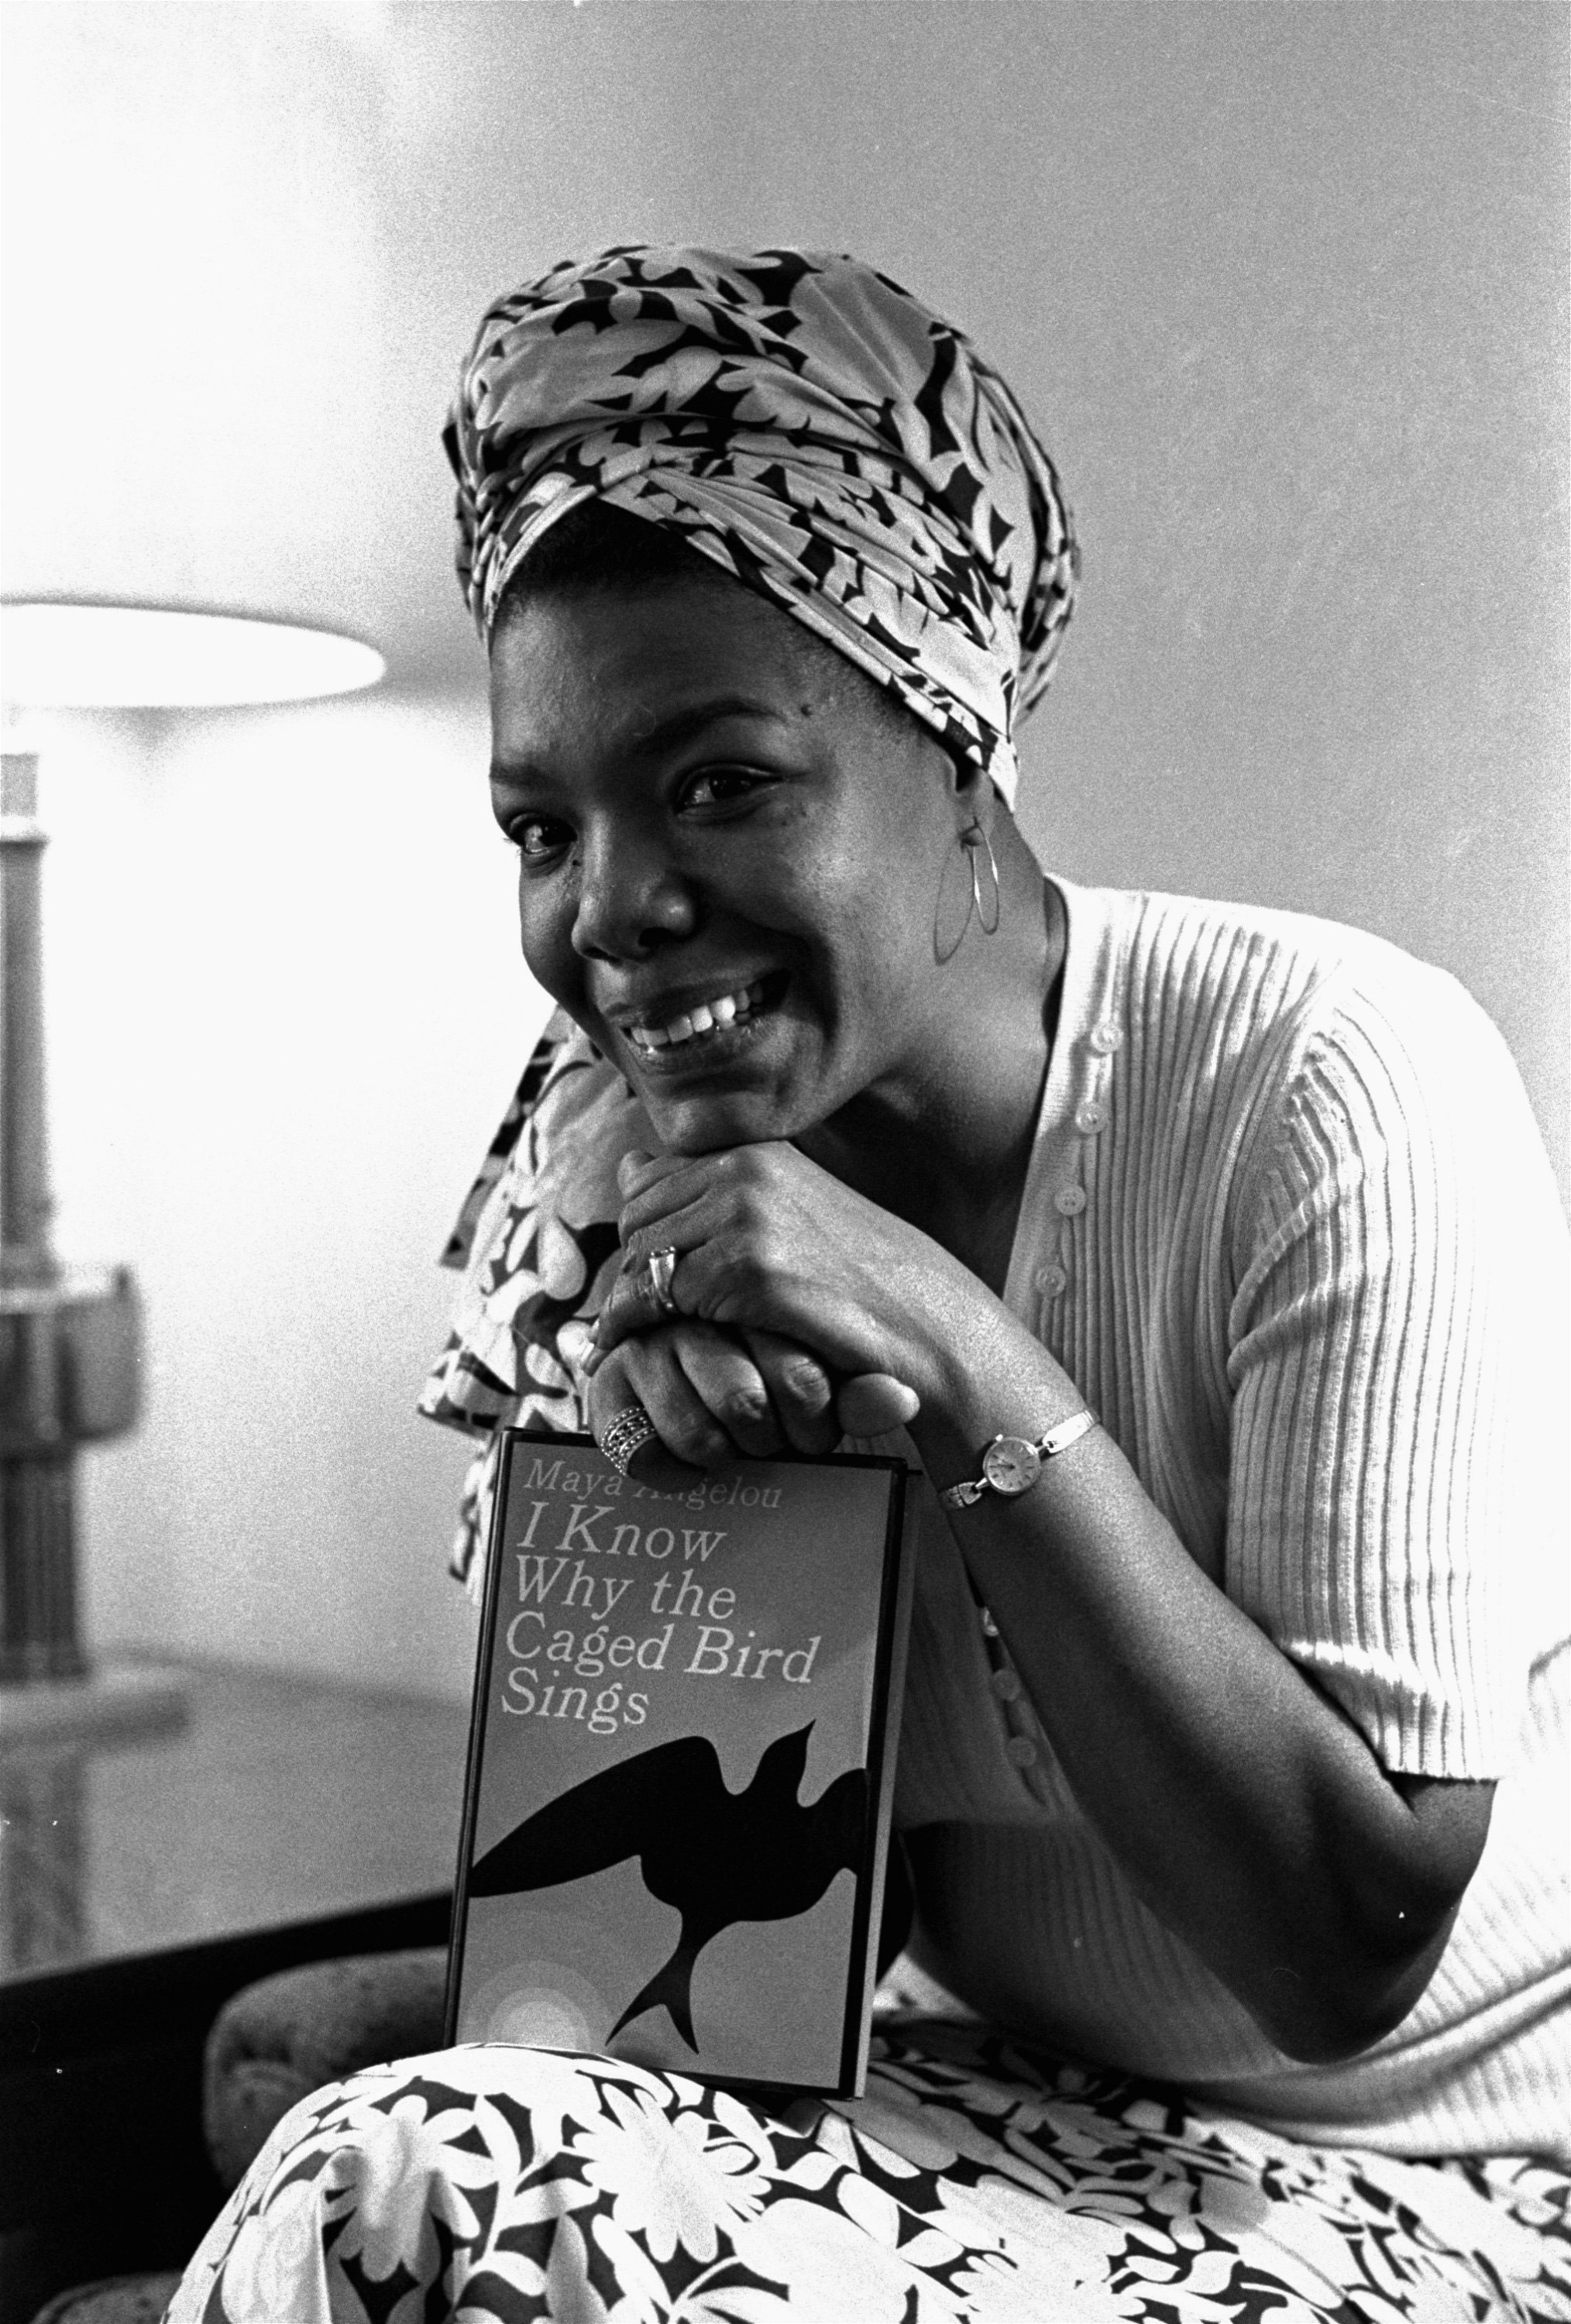 an autobiography of the life of maya angelou on why caged bird sings Maya angelou was born as marguerite johnson on april life doesn't frighten me she began work on the book that would become i know why the caged bird sings.